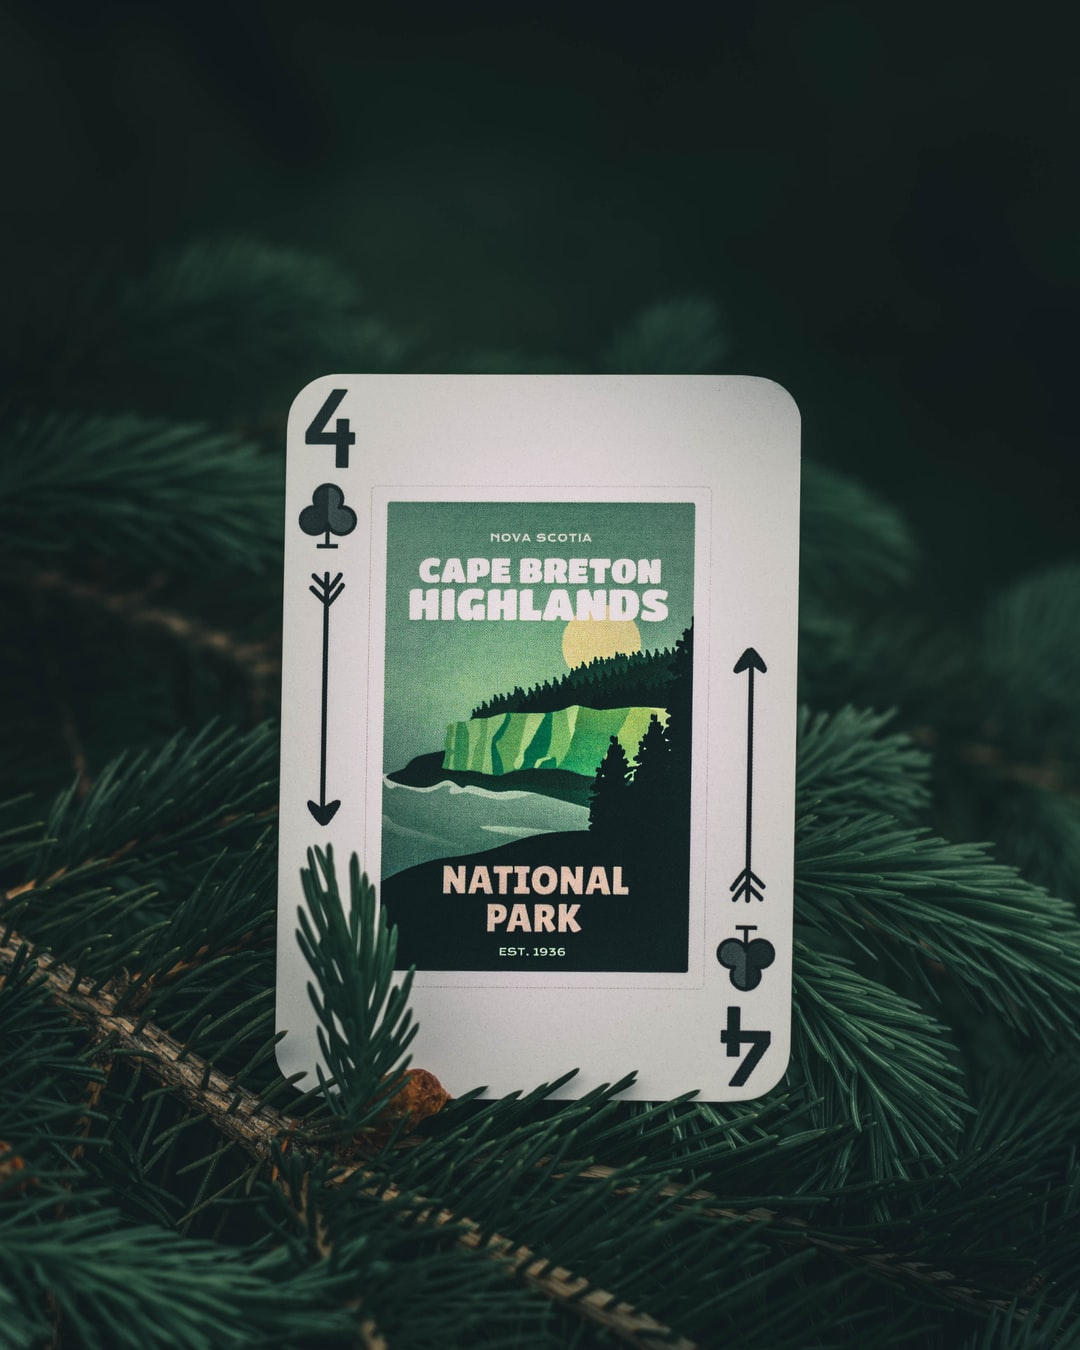 I started an Etsy store selling Canadian National Parks playing cards!